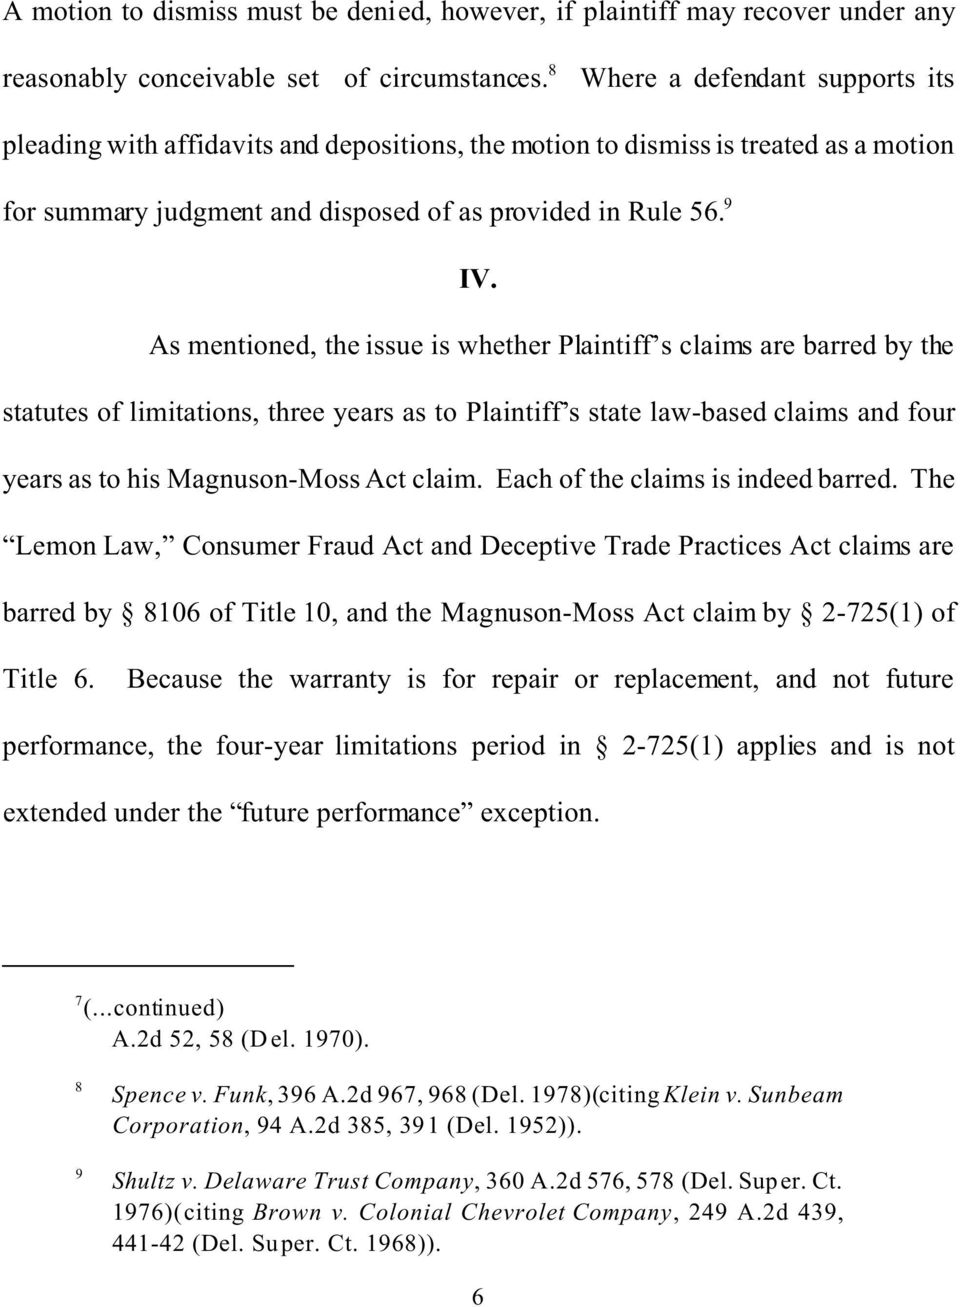 As mentioned, the issue is whether Plaintiff s claims are barred by the statutes of limitations, three years as to Plaintiff s state law-based claims and four years as to his Magnuson-Moss Act claim.